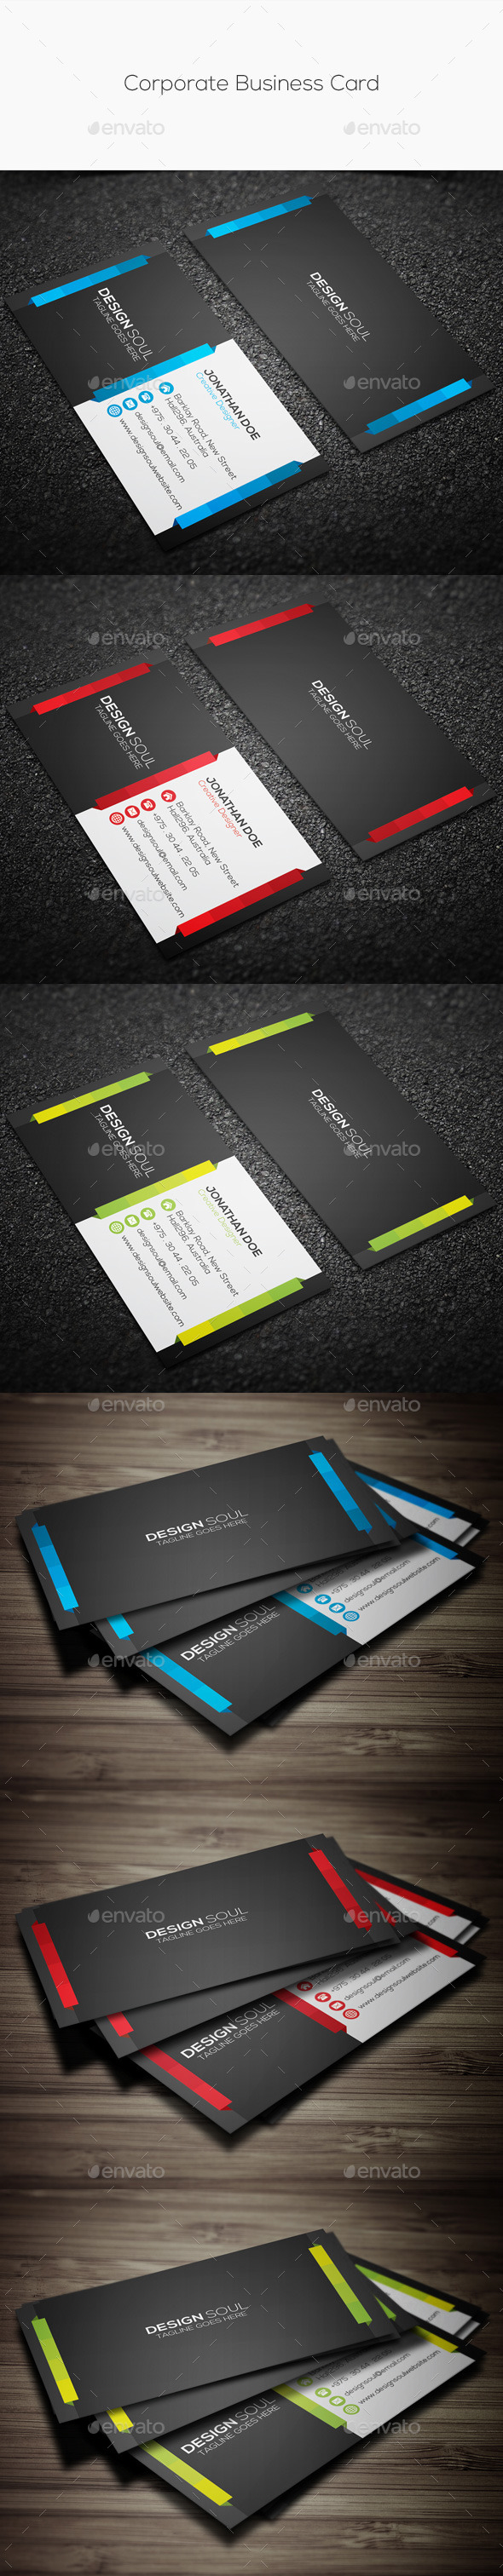 GraphicRiver Corporate Business Card 11201564